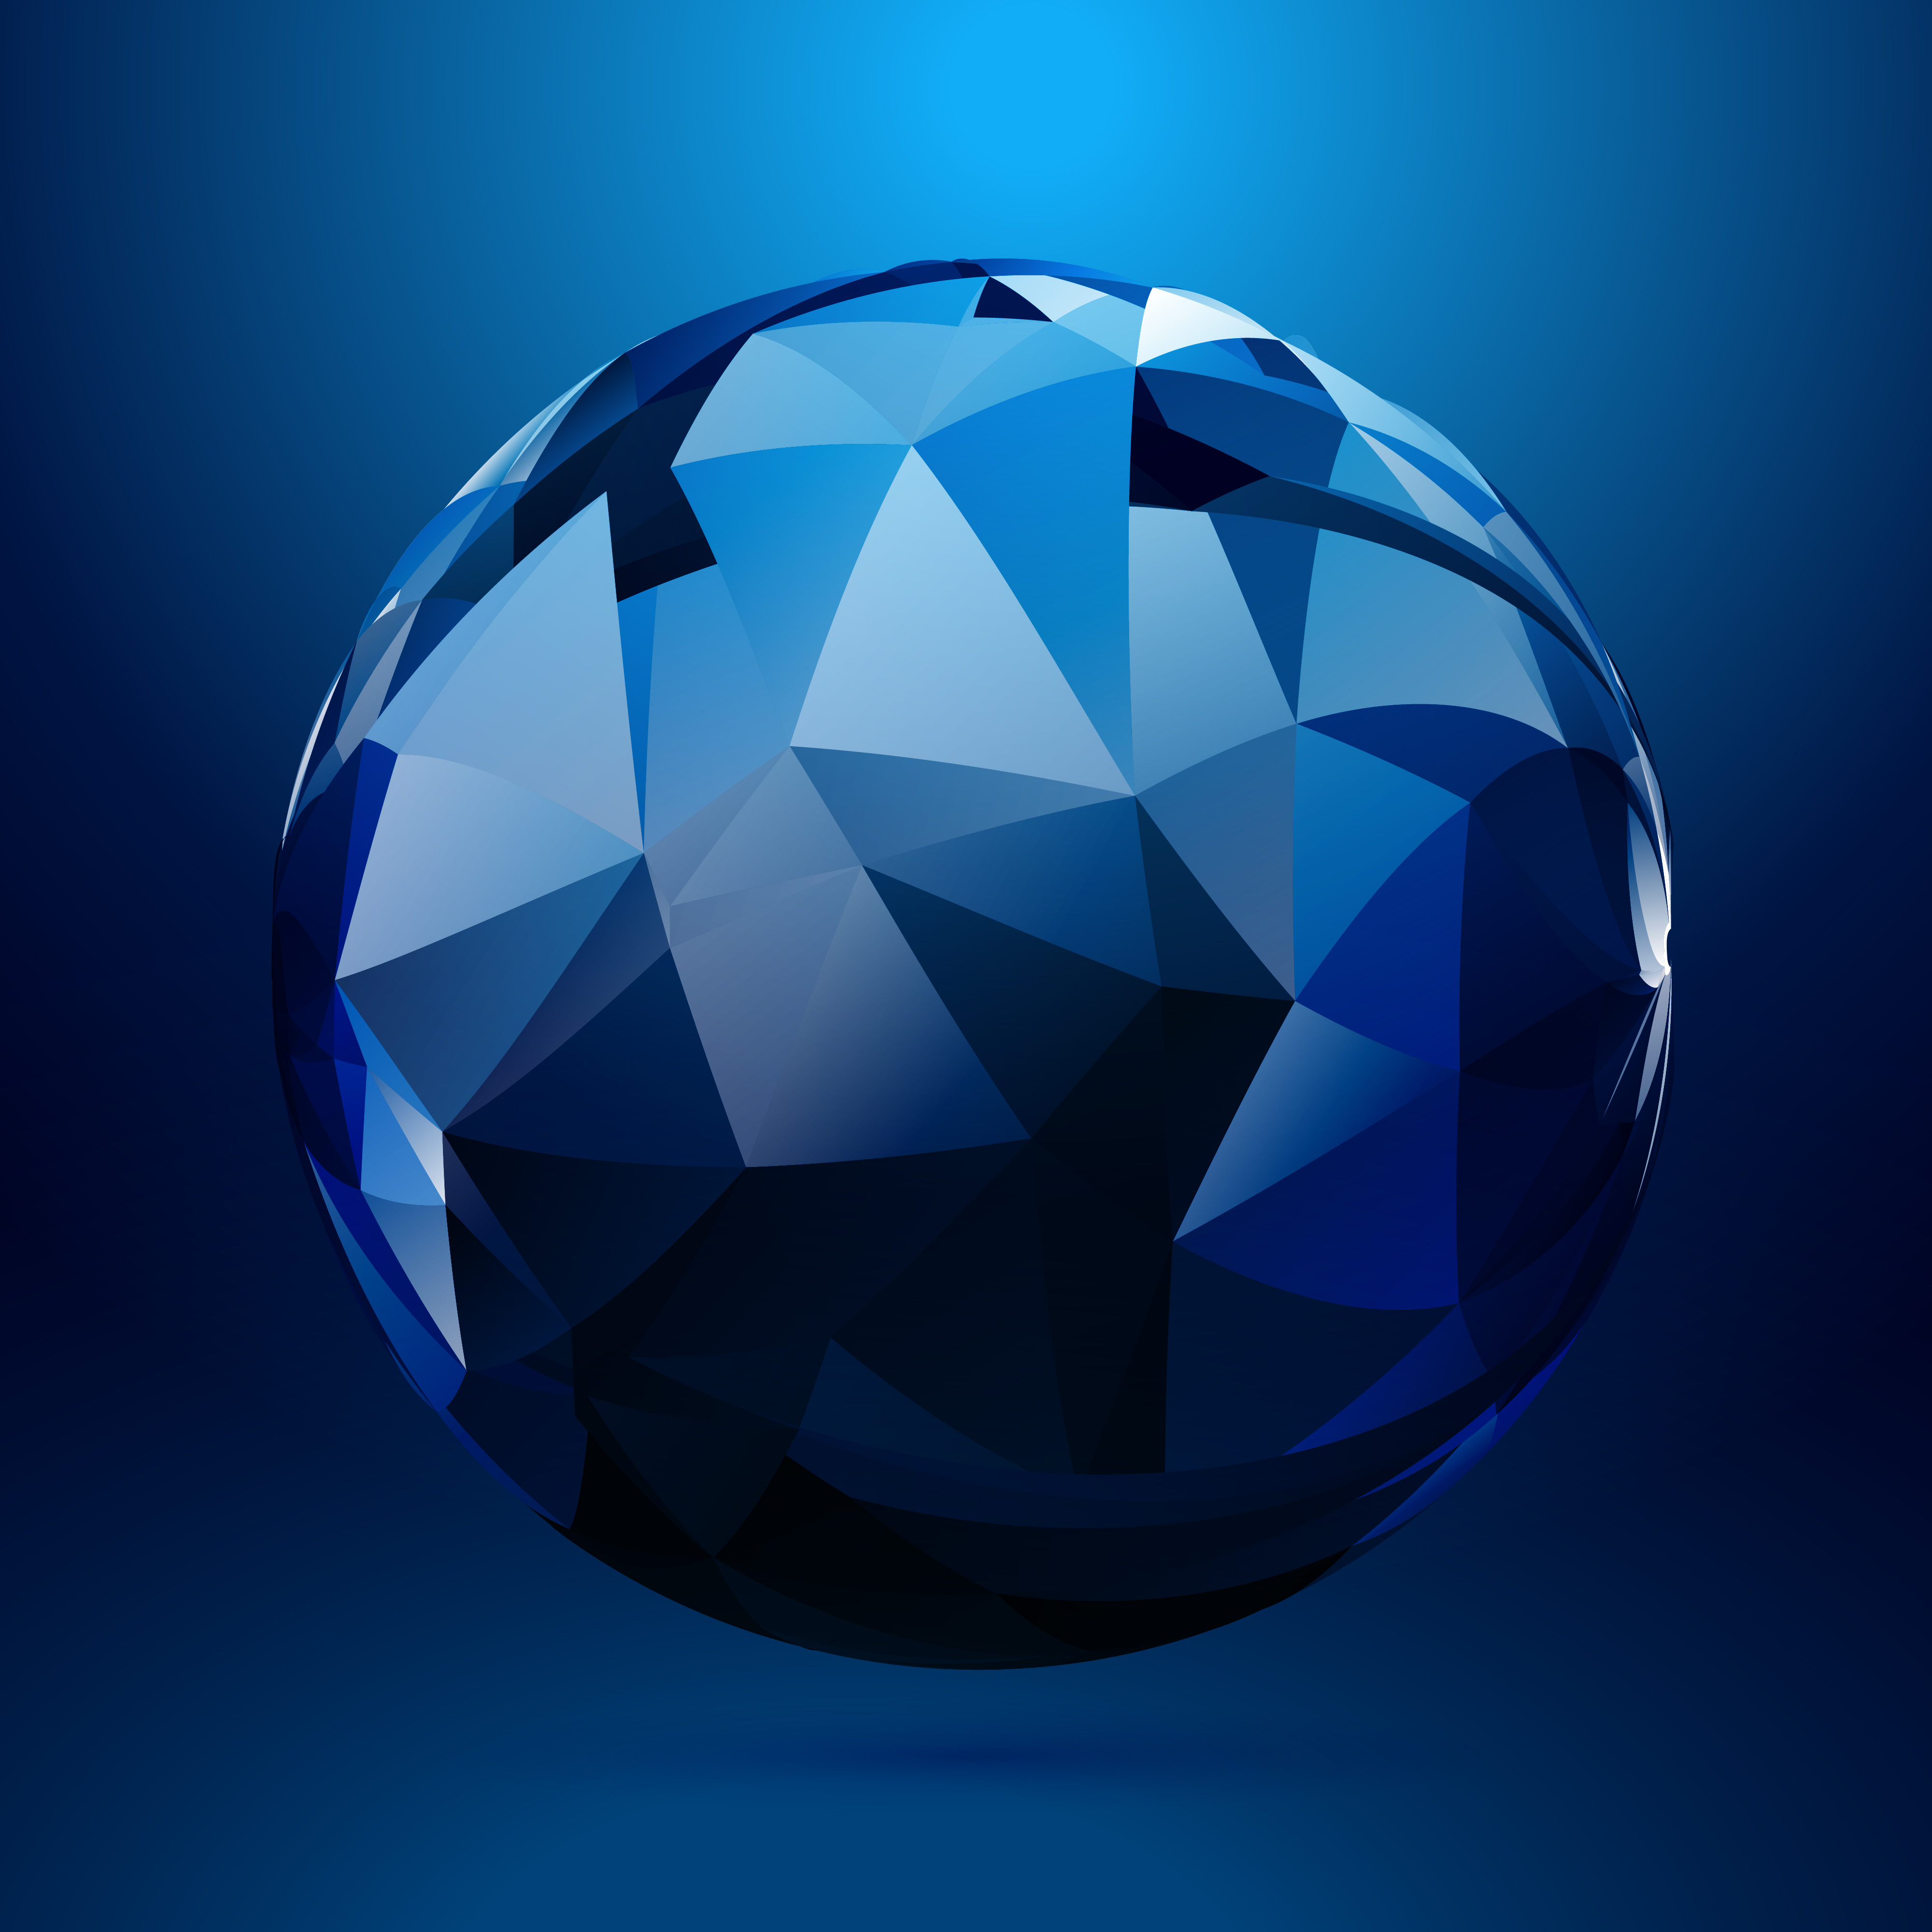 3d Sphere Made With Geometrical Shapes Vector Design